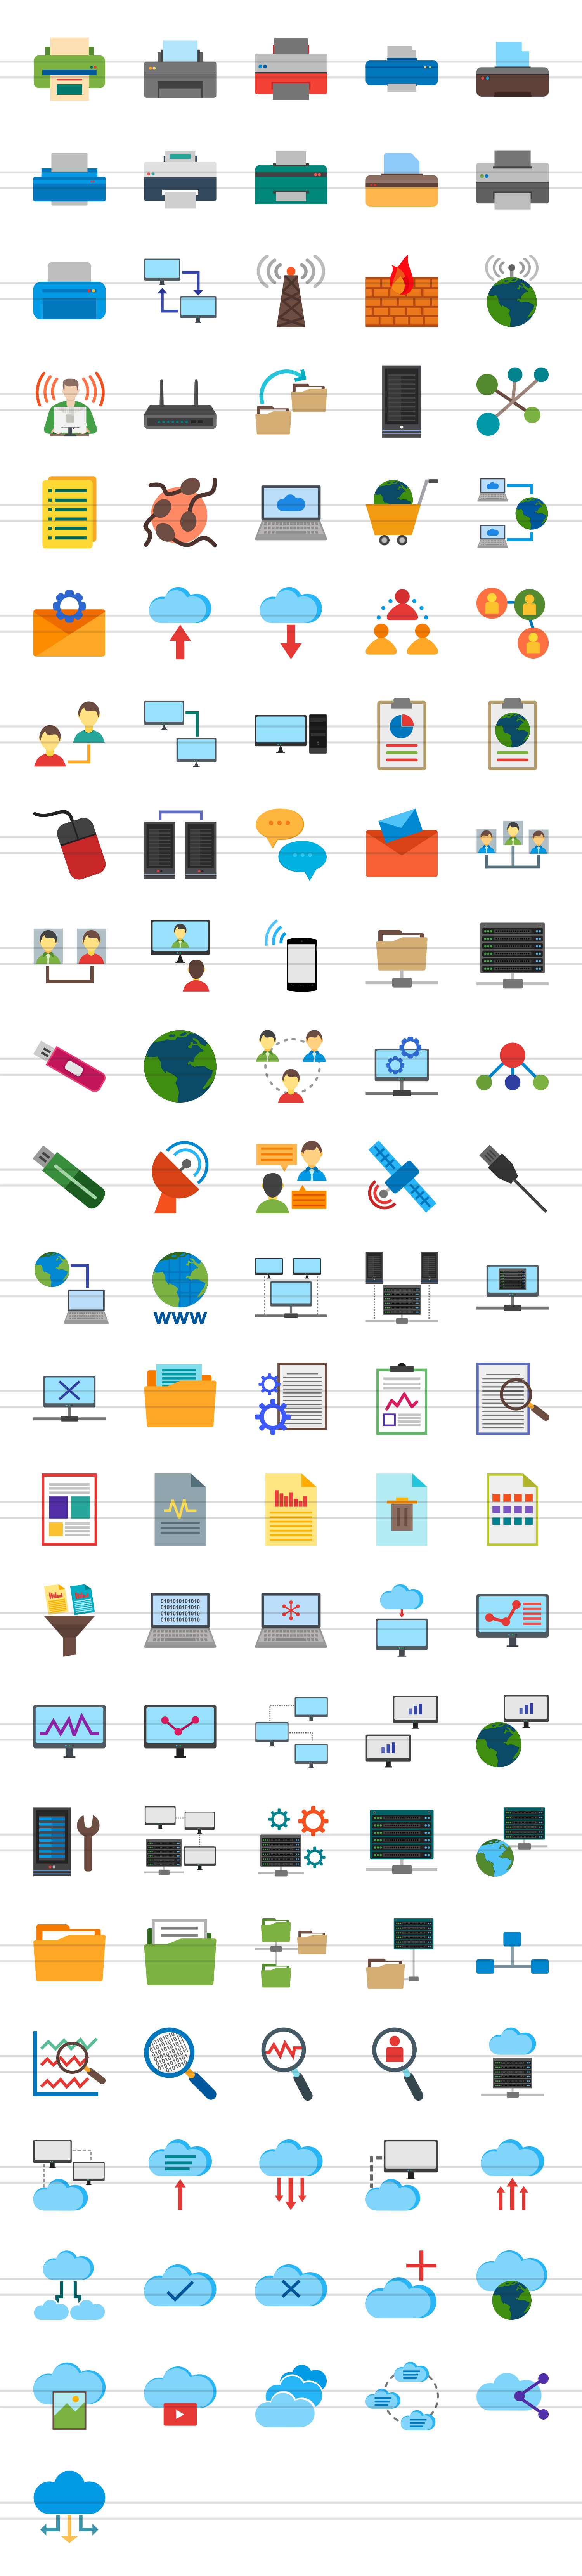 111 Networking & Printers Flat Icons example image 2